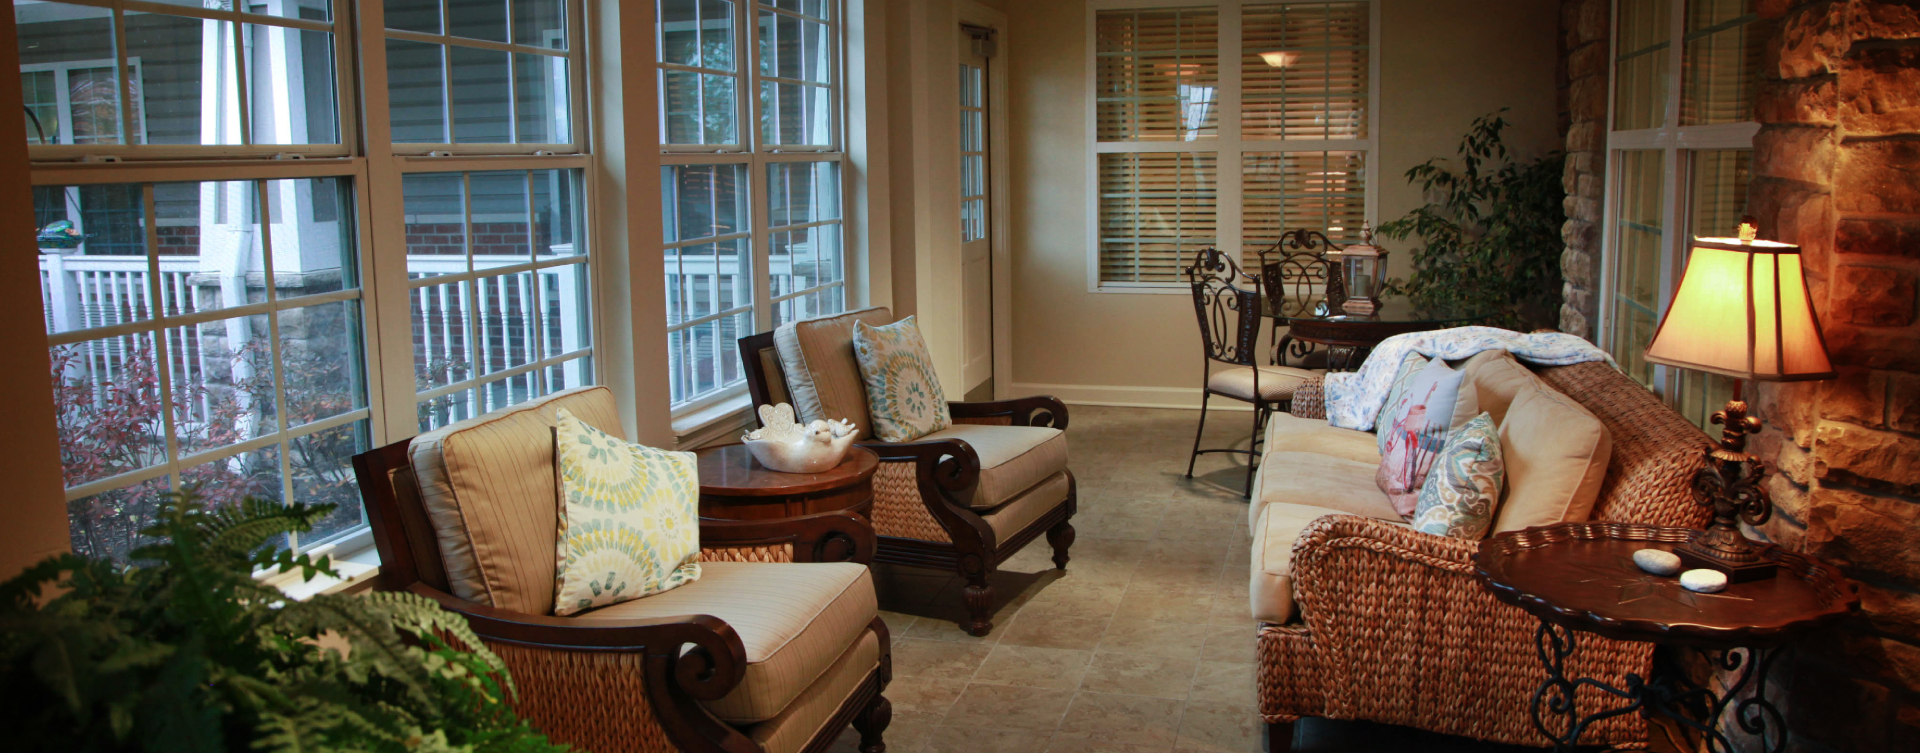 Relax in the warmth of the sunroom at Bickford of St. Charles